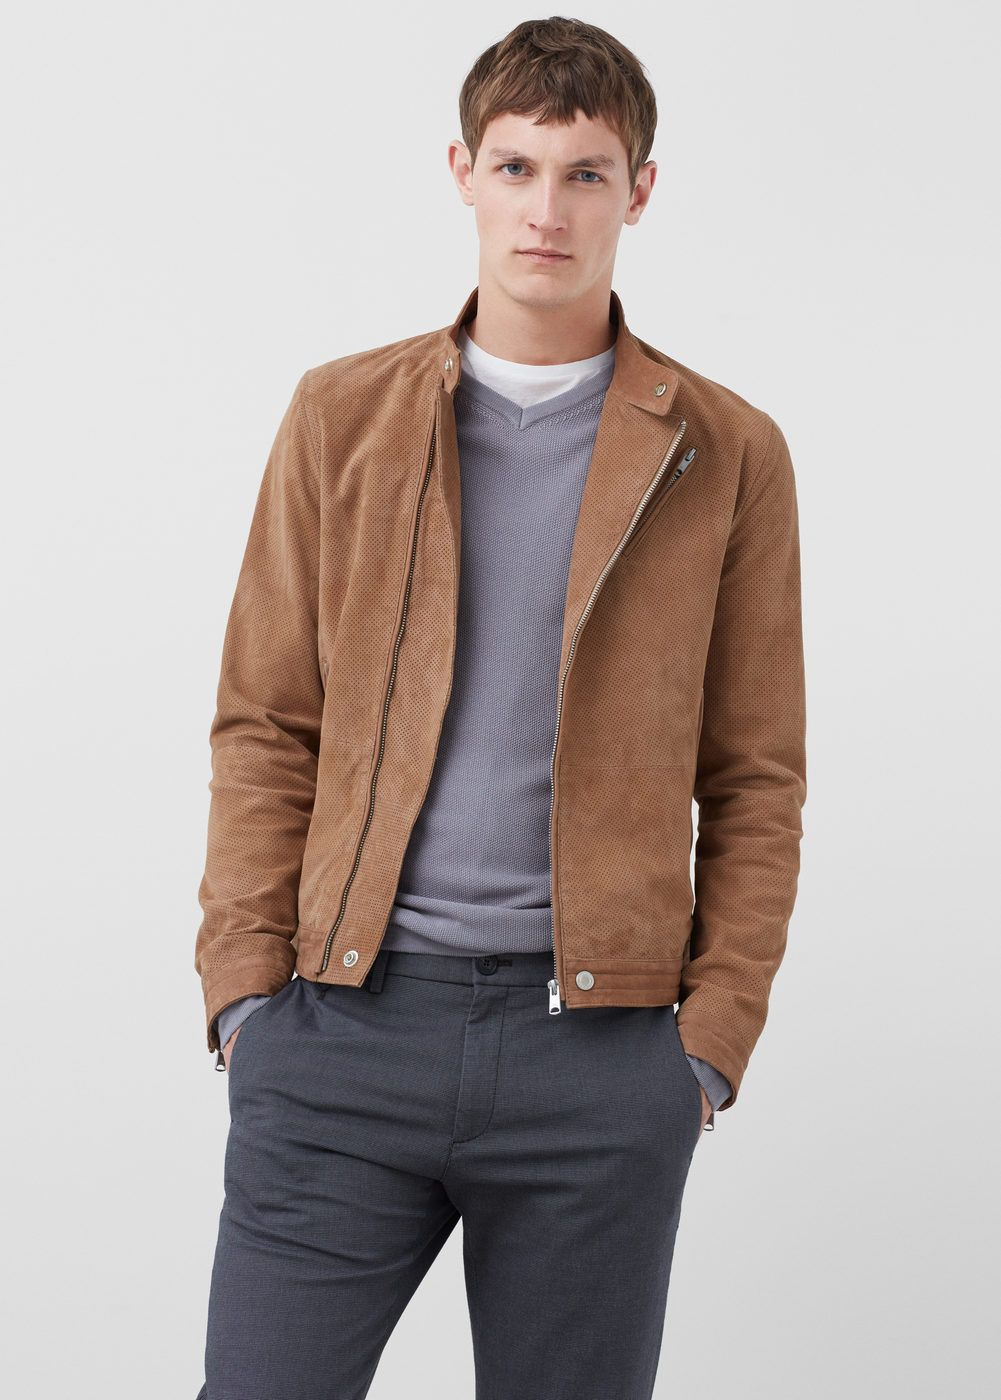 643afed13c62 Suede biker jacket - Men